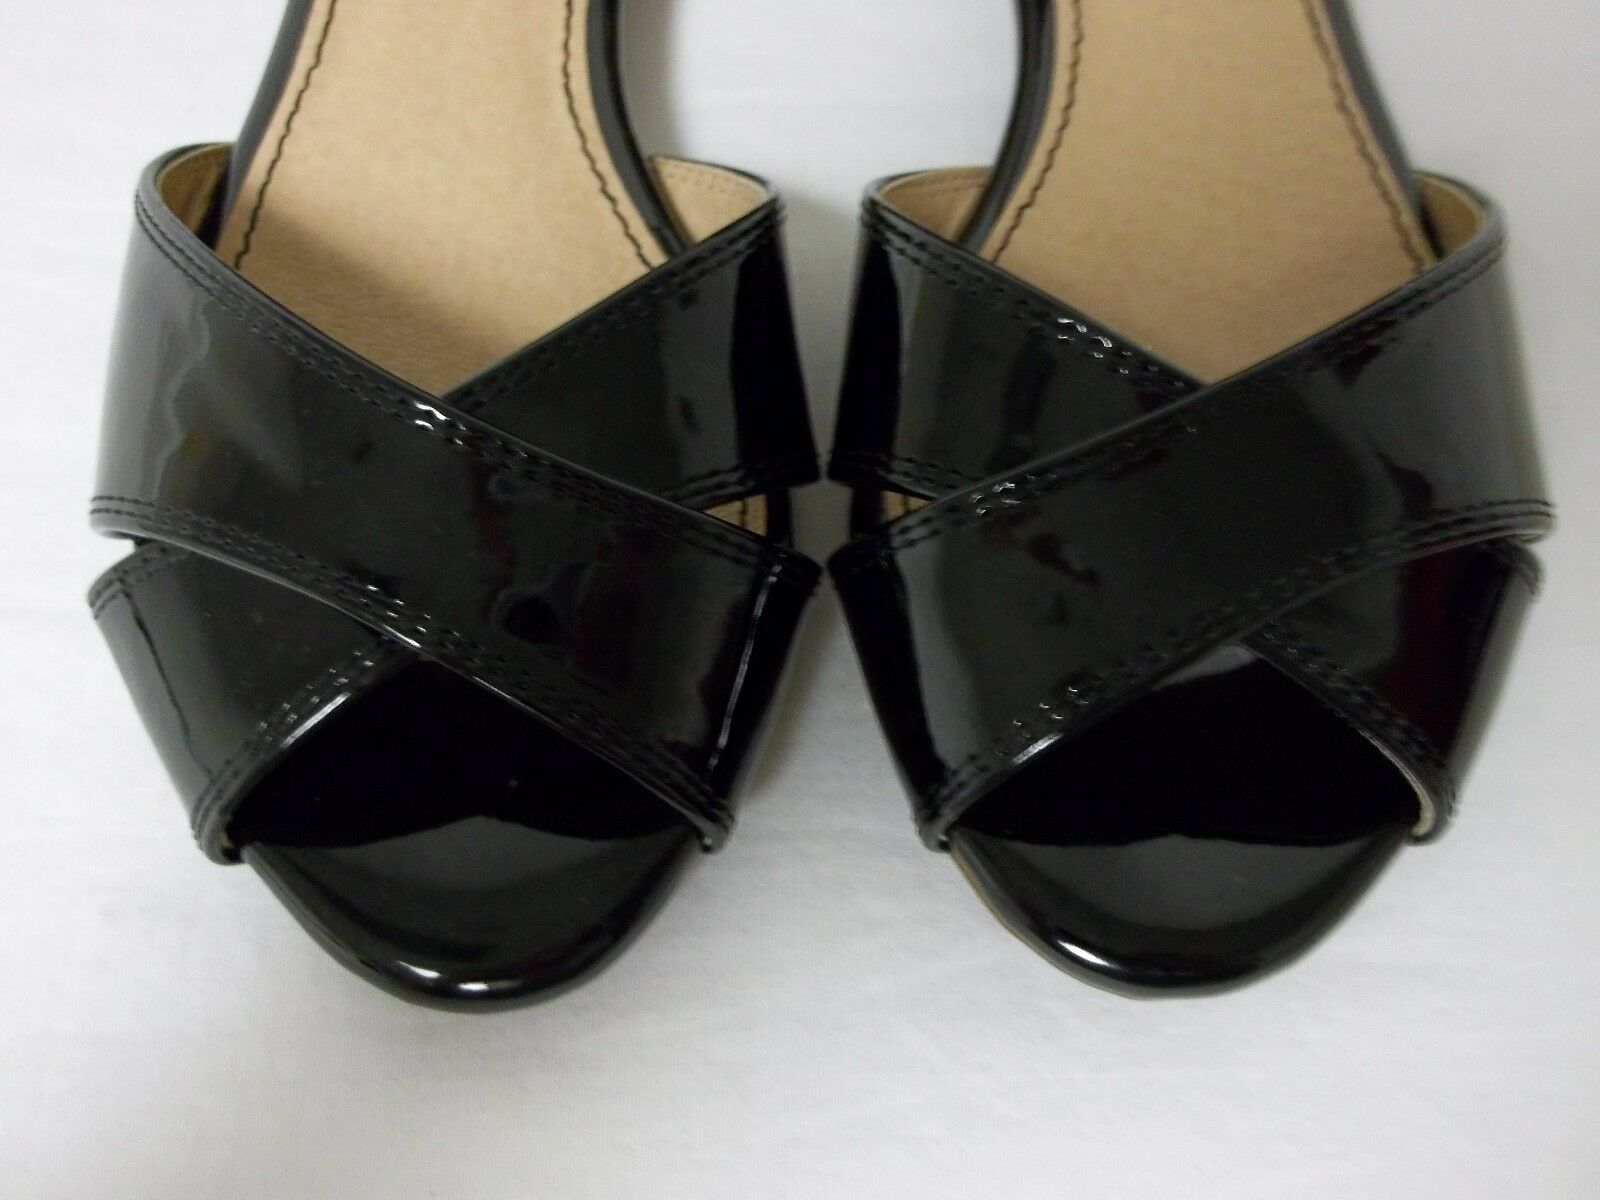 Splendid Size 6.5 M Atlanta Black Tan Leather Leather Leather Ankle Strap Flats New Womens shoes 388217